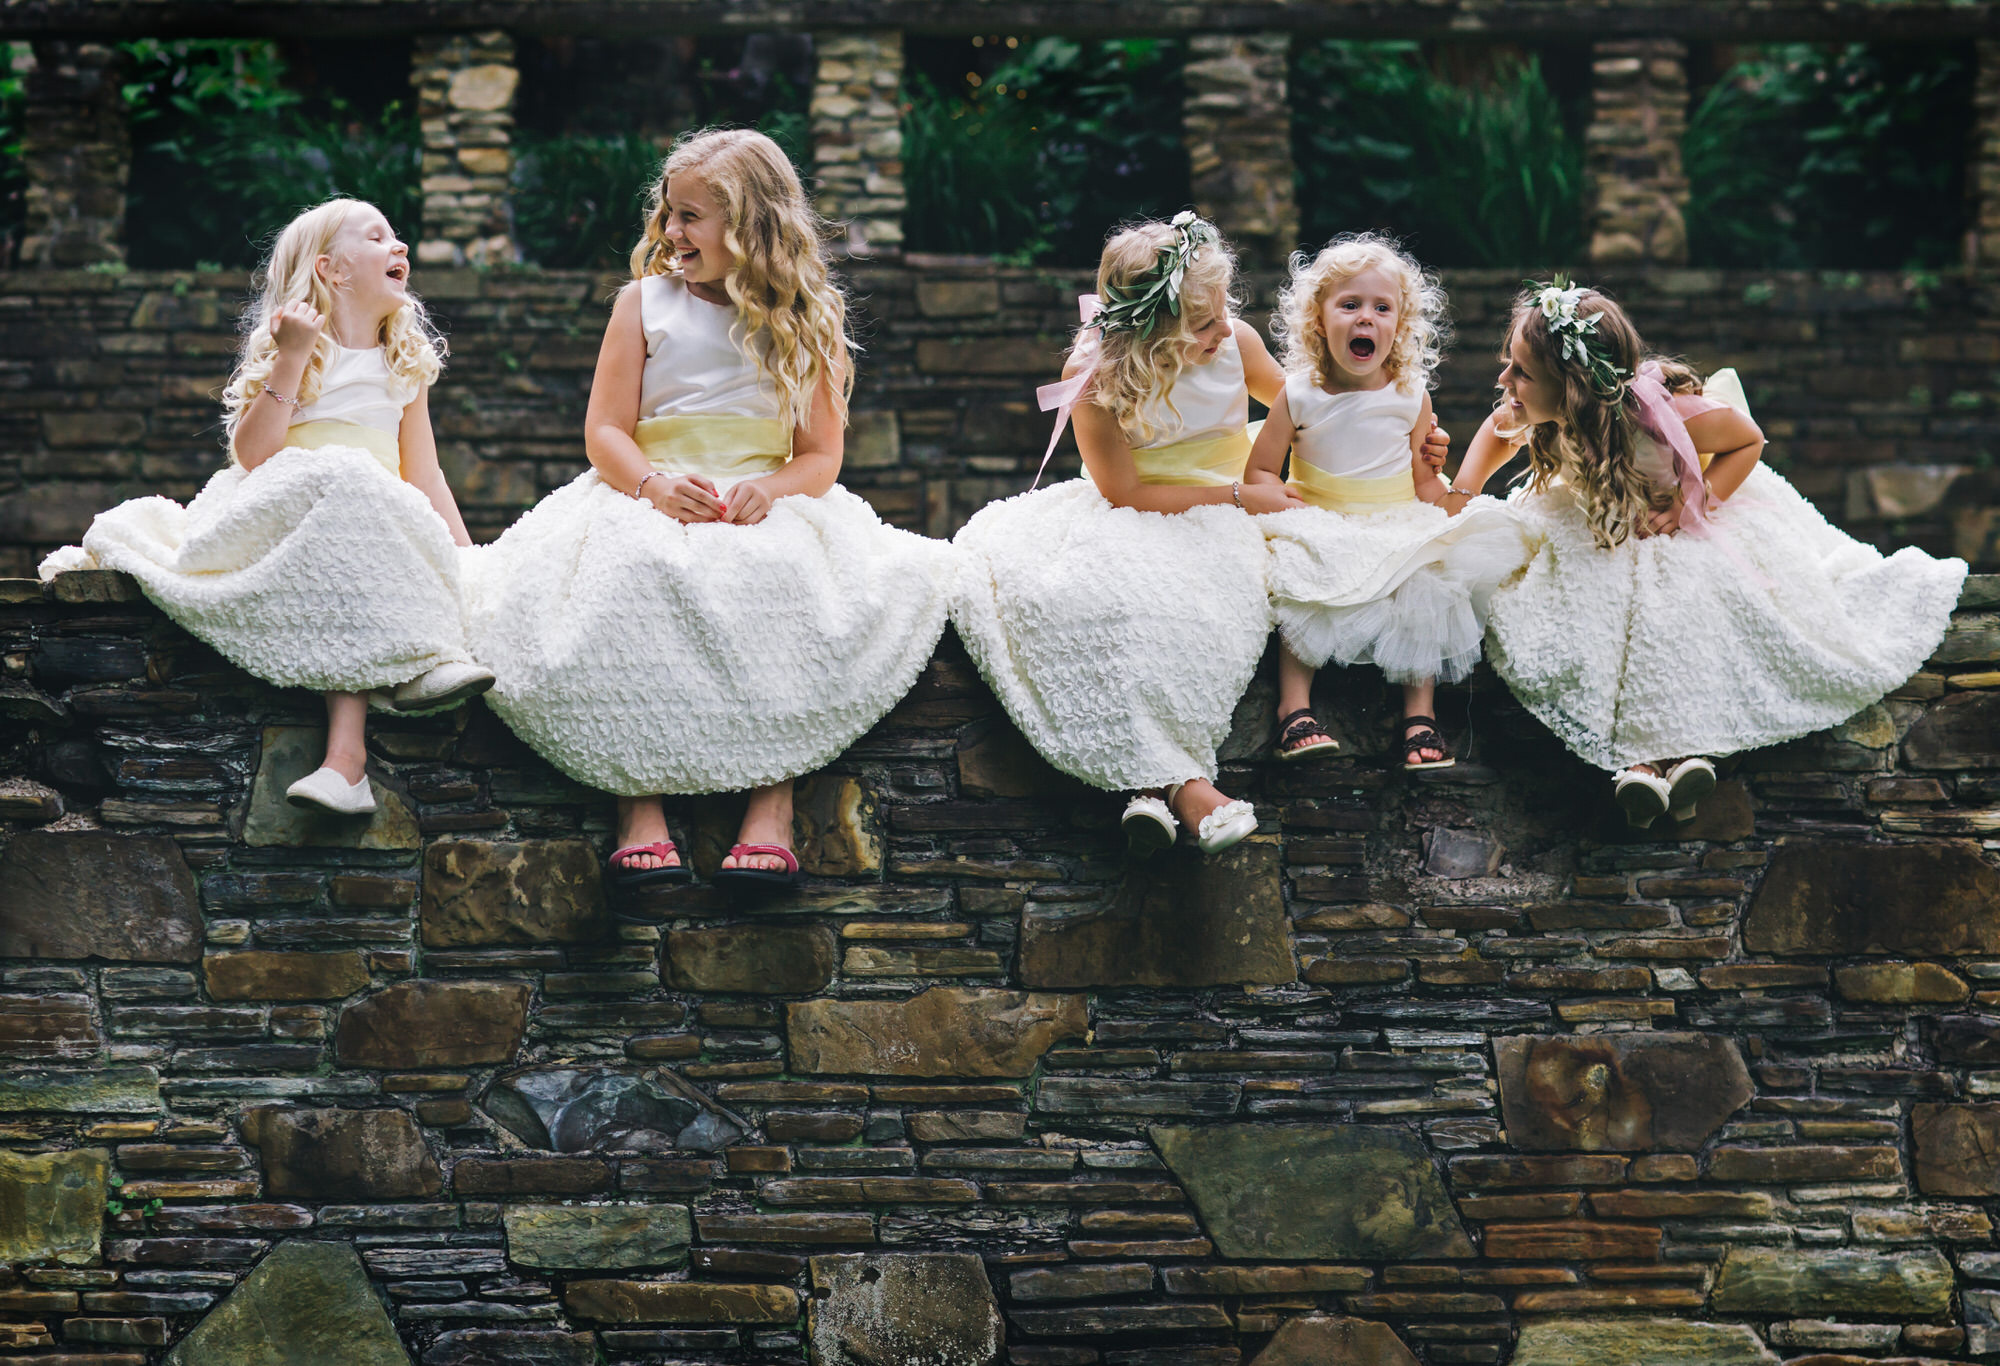 Adorable flower girls setting in a row - photo by Ken Pak